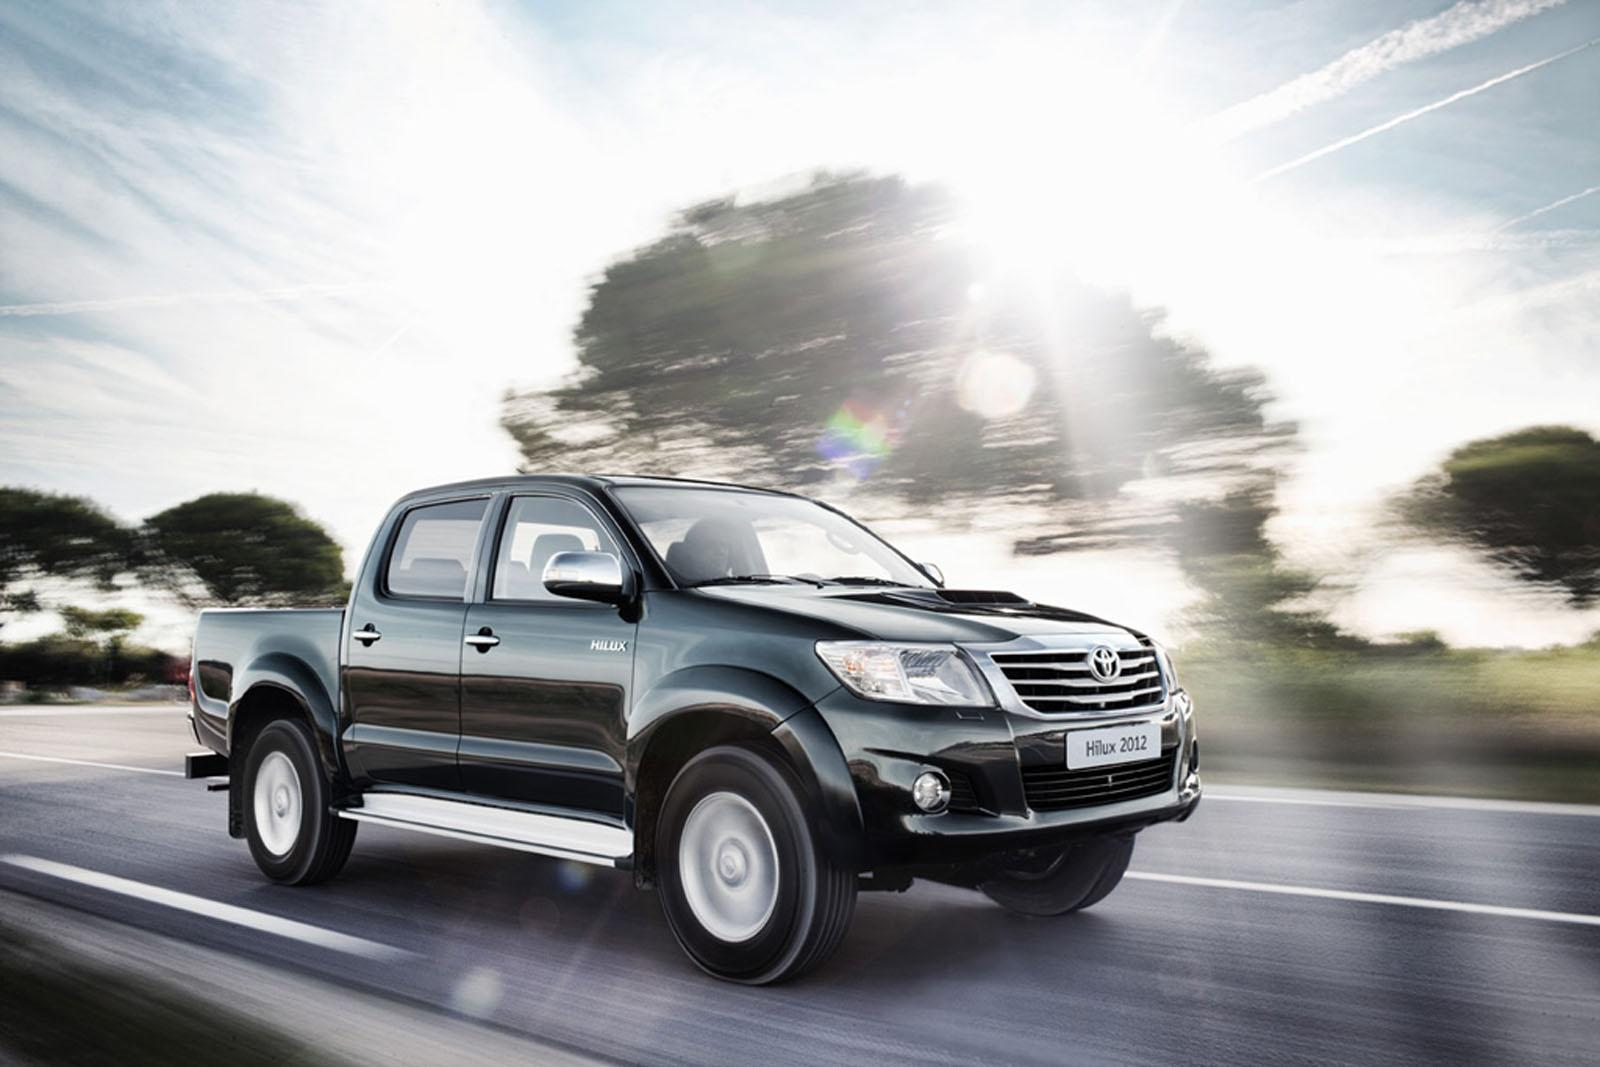 2012 Toyota Hilux Picture #2 of 4